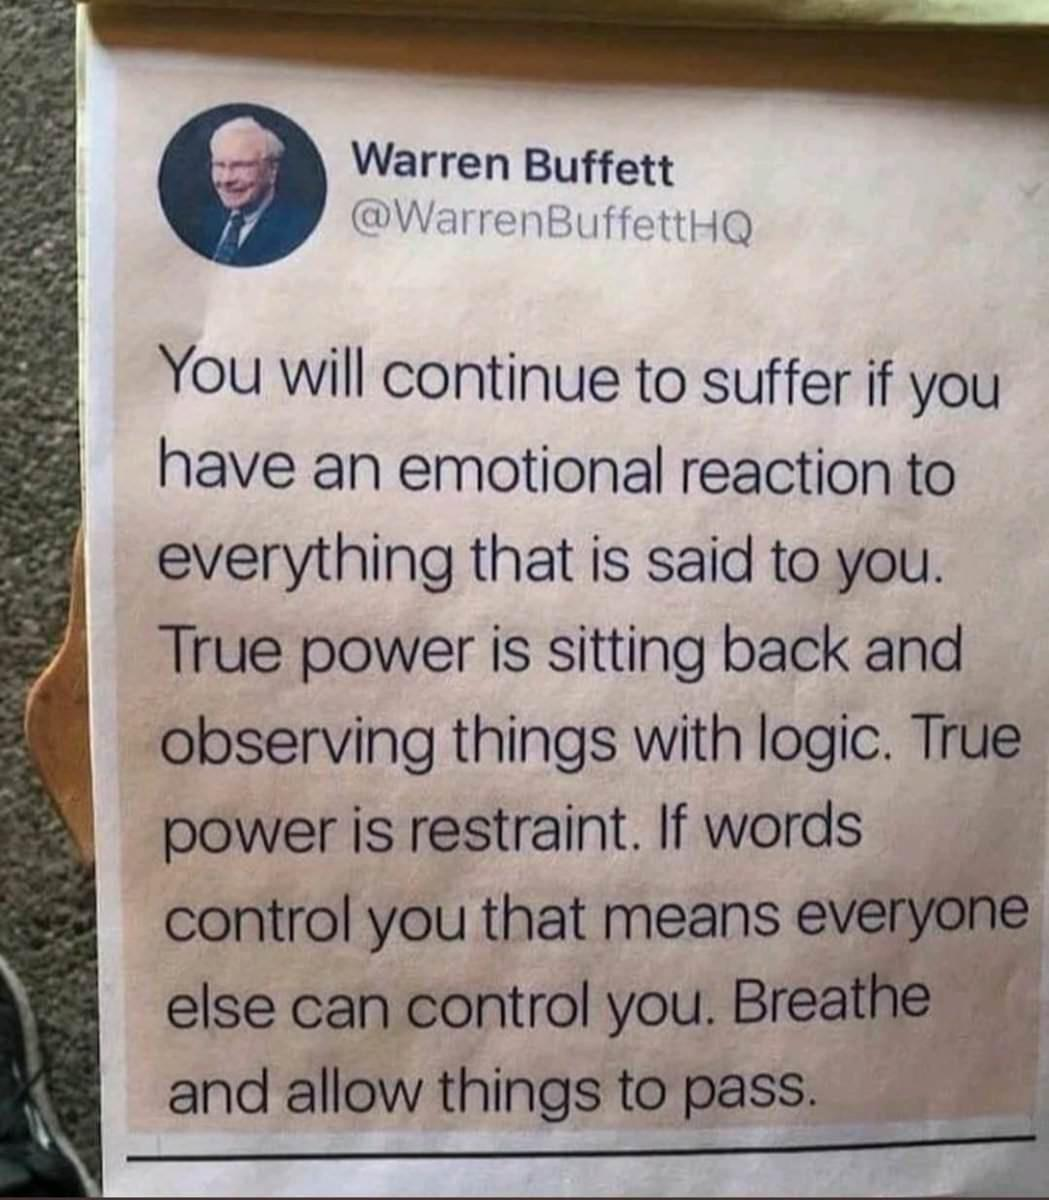 If words control you then everyone can control you [Image]